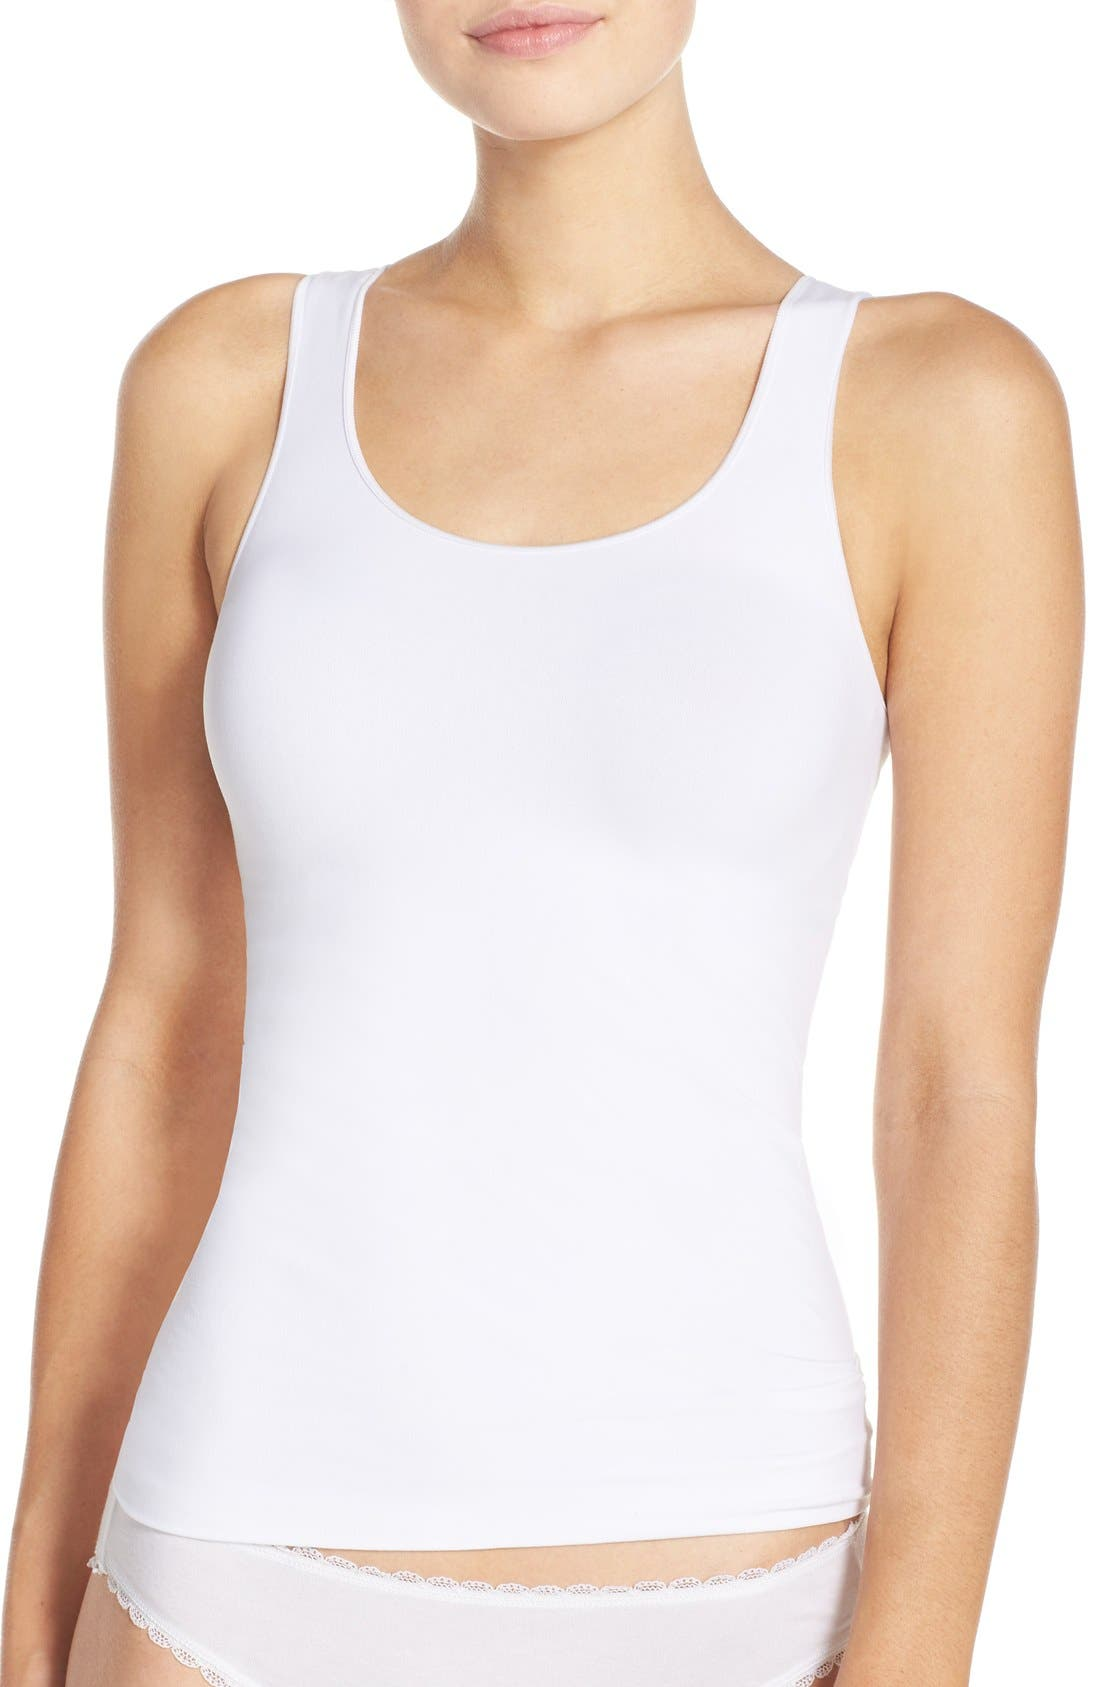 Main Image - Nordstrom Lingerie Two-Way Seamless Tank (2 for $49)